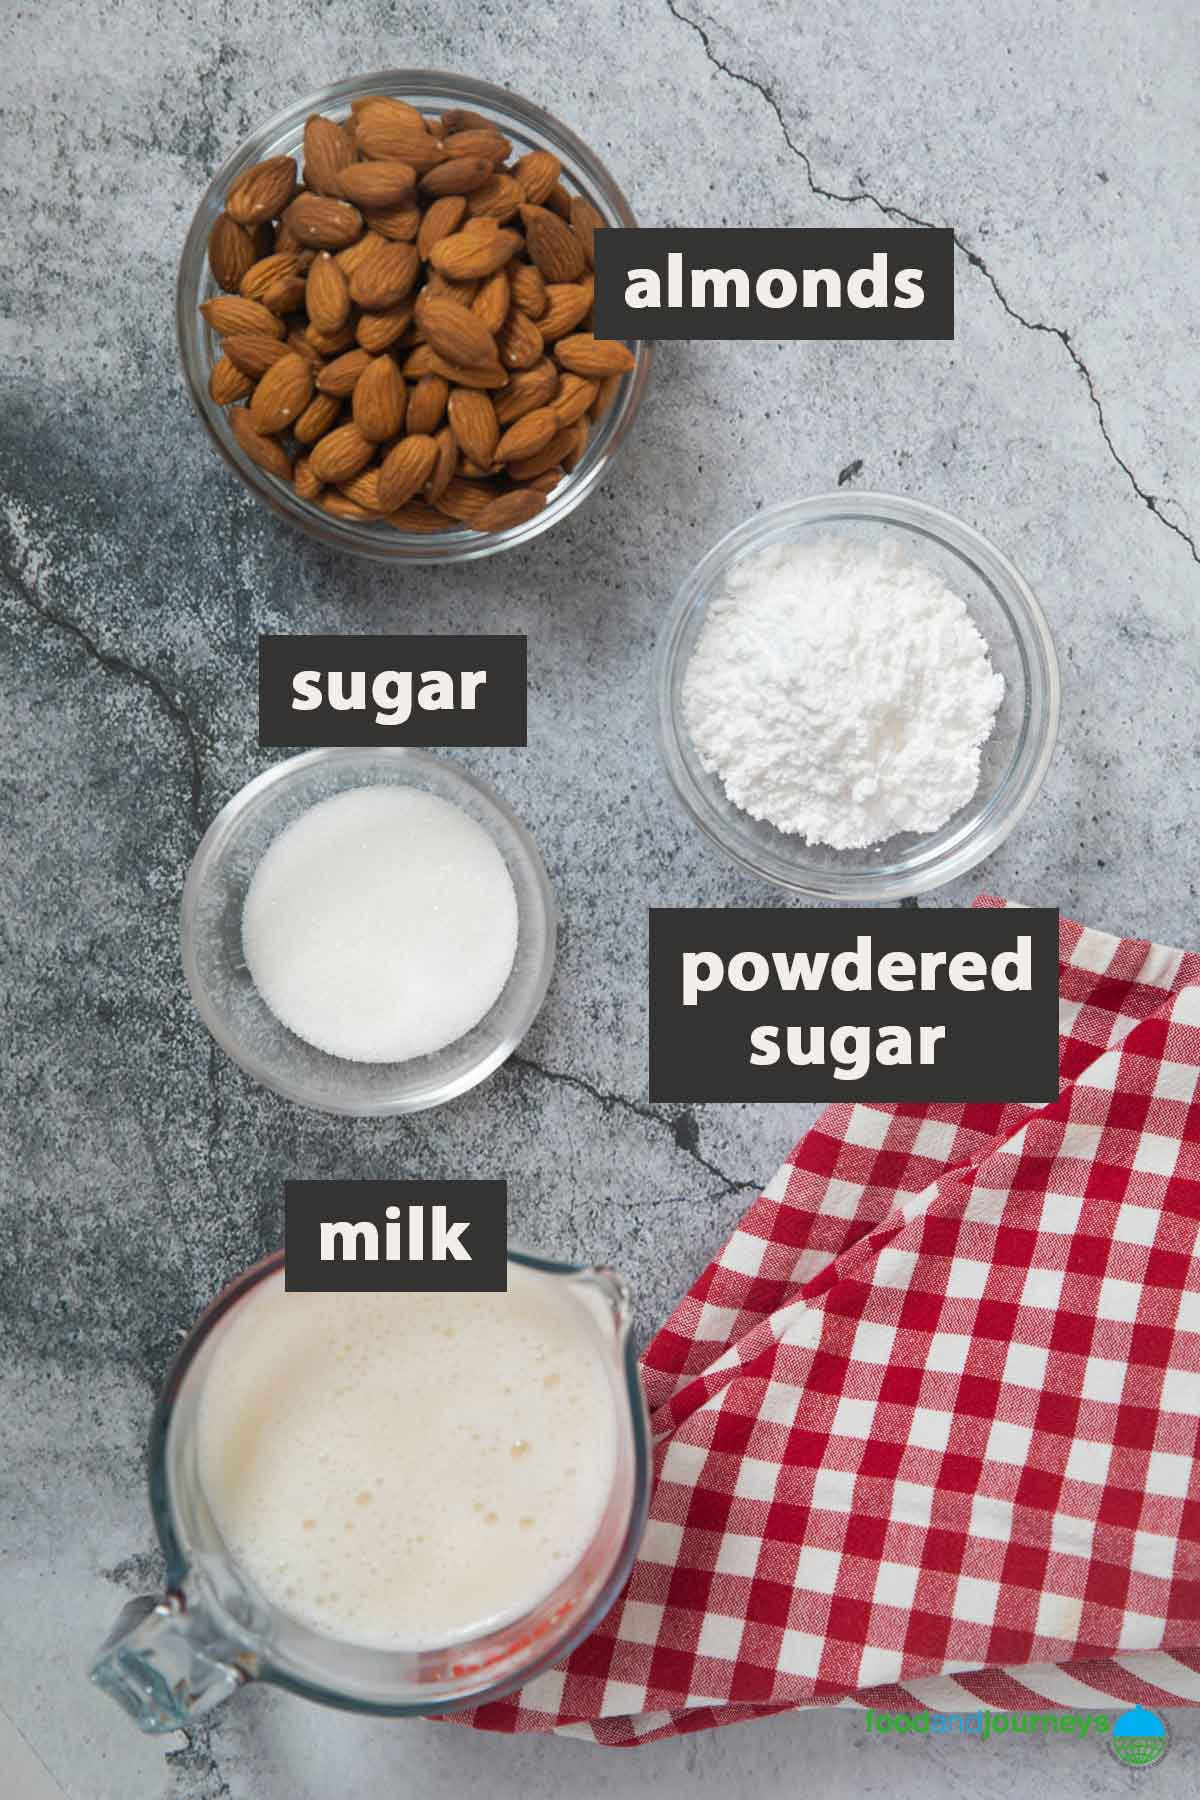 An image showing all the ingredients you need to prepare Sicilian almond granita at home.